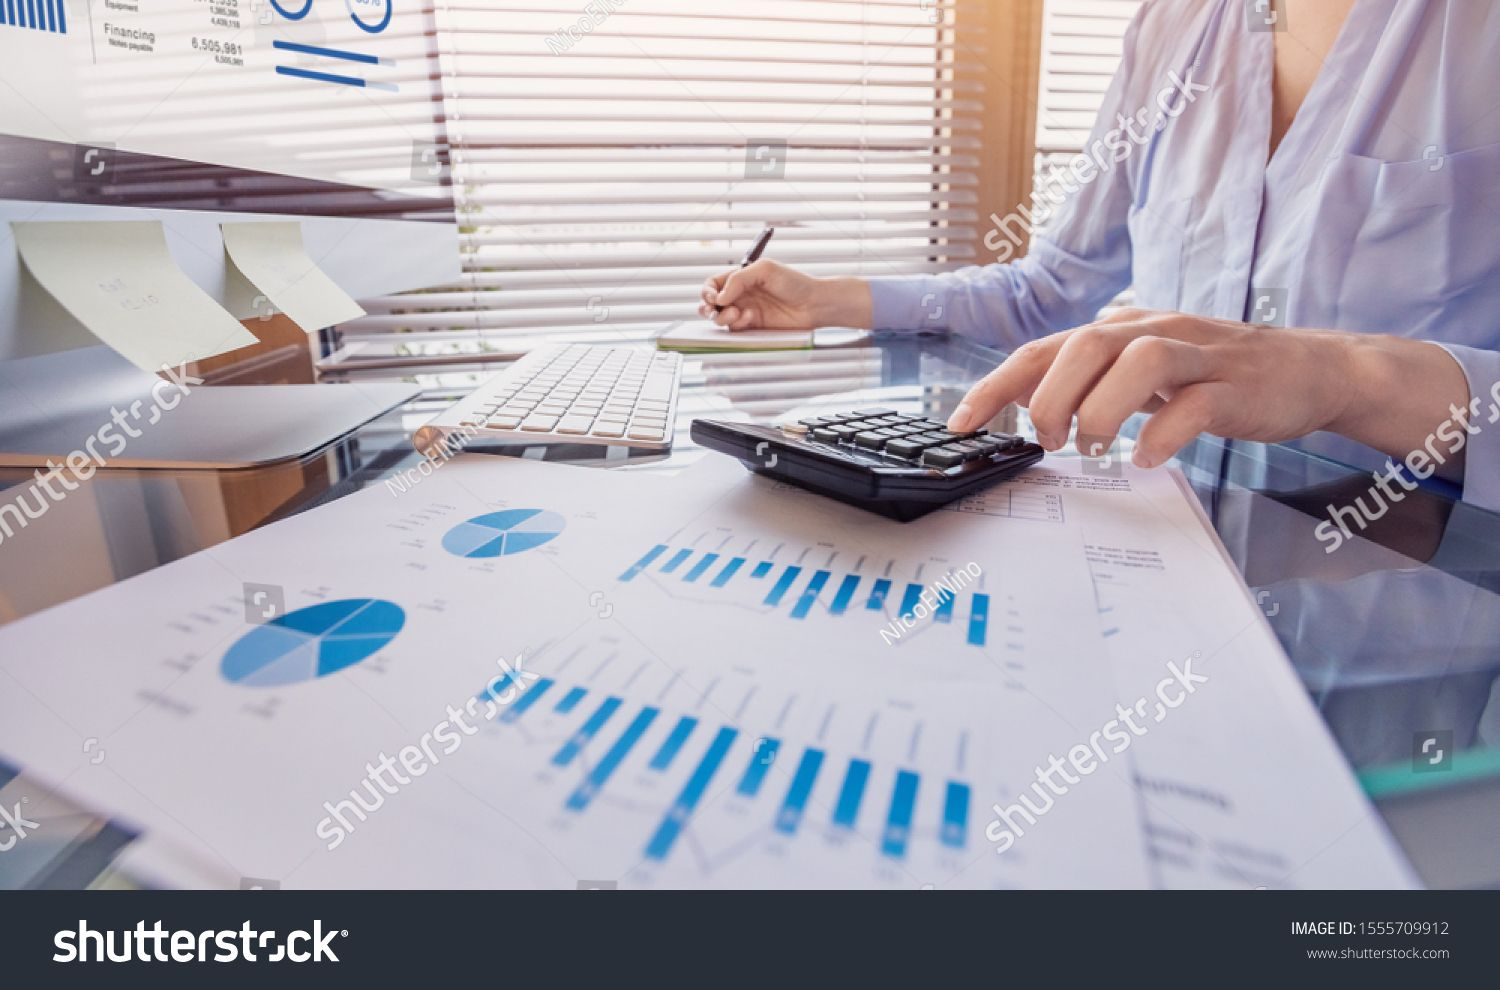 Business Person Working On Financial Report And Analyzing Revenue And Expenses Data With Calculator In Office Roy Business Person Financial Statement Financial